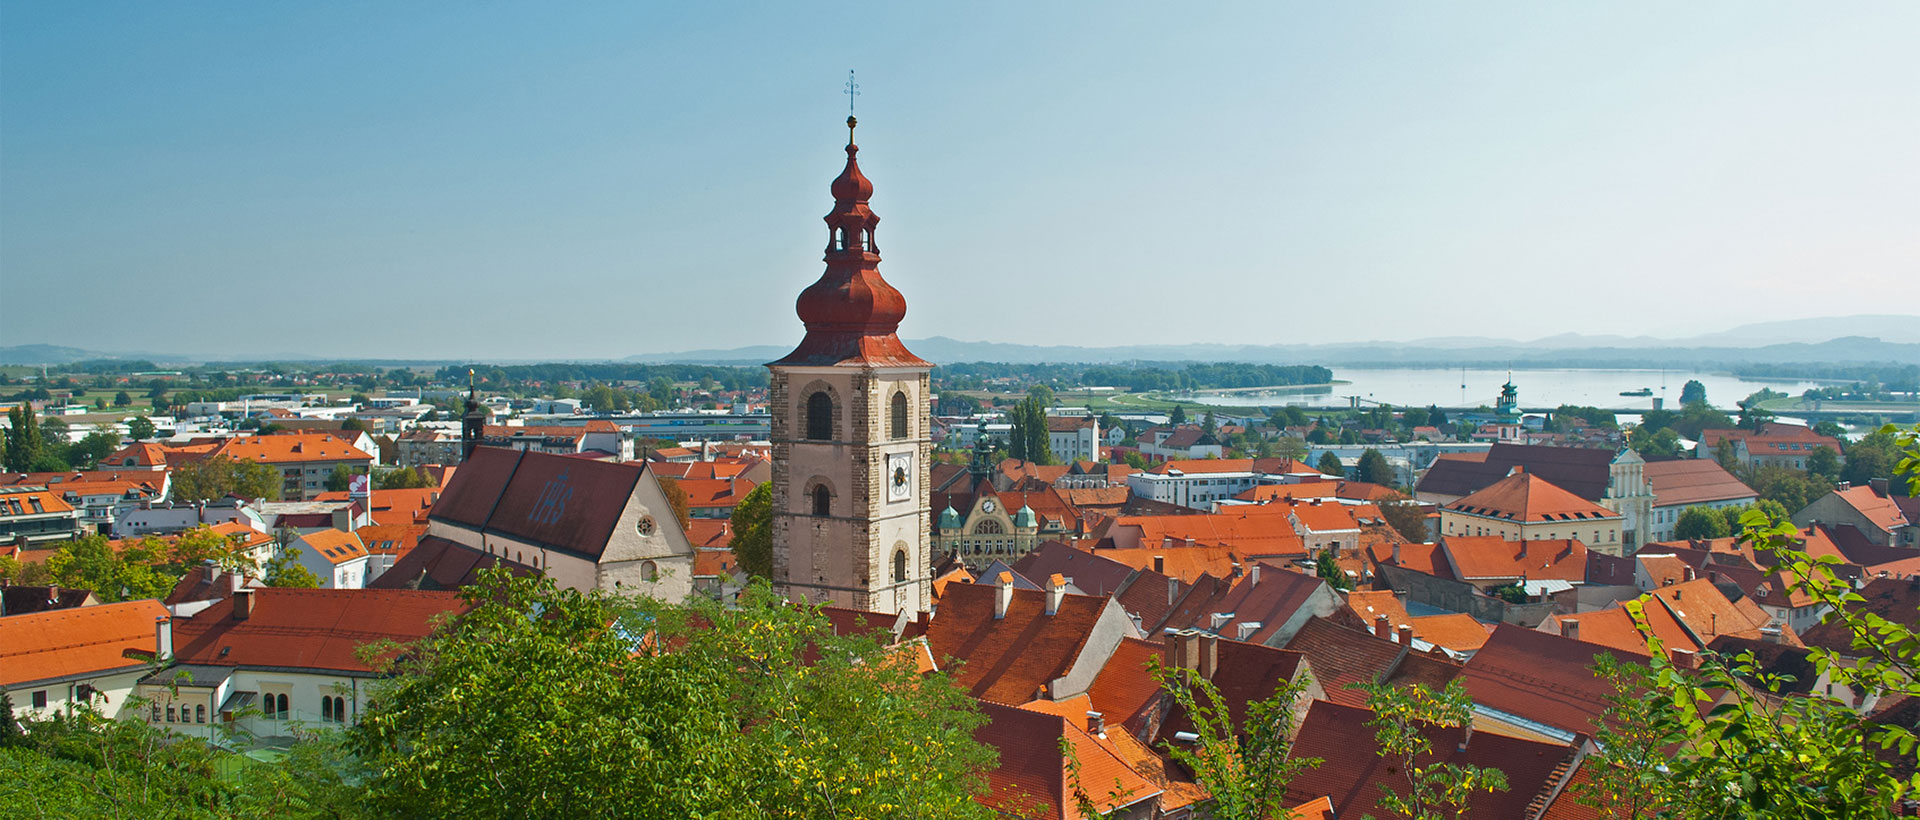 Church and old city of Slovenia town - Ptuj